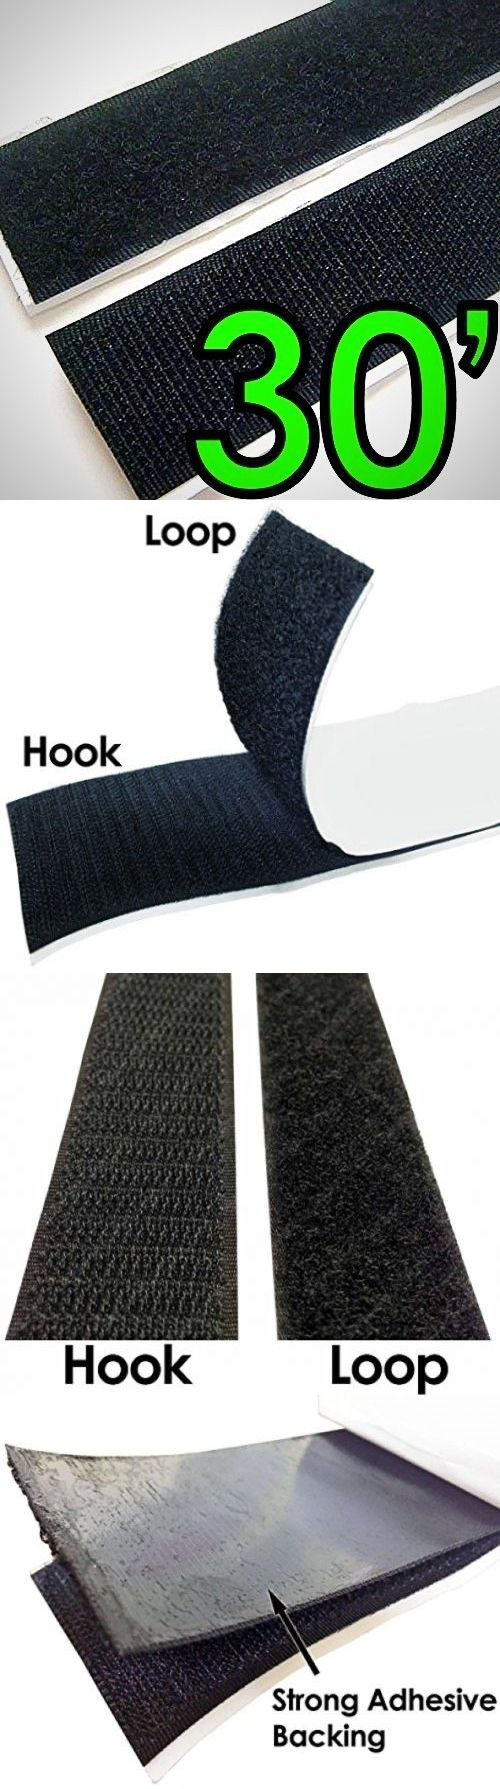 Hook and Loop Tape 180927: Electriduct 1 Self Adhesive Hook And Loop Sticky Back Tape Fabric Fastener - 30 -> BUY IT NOW ONLY: $38.99 on eBay!